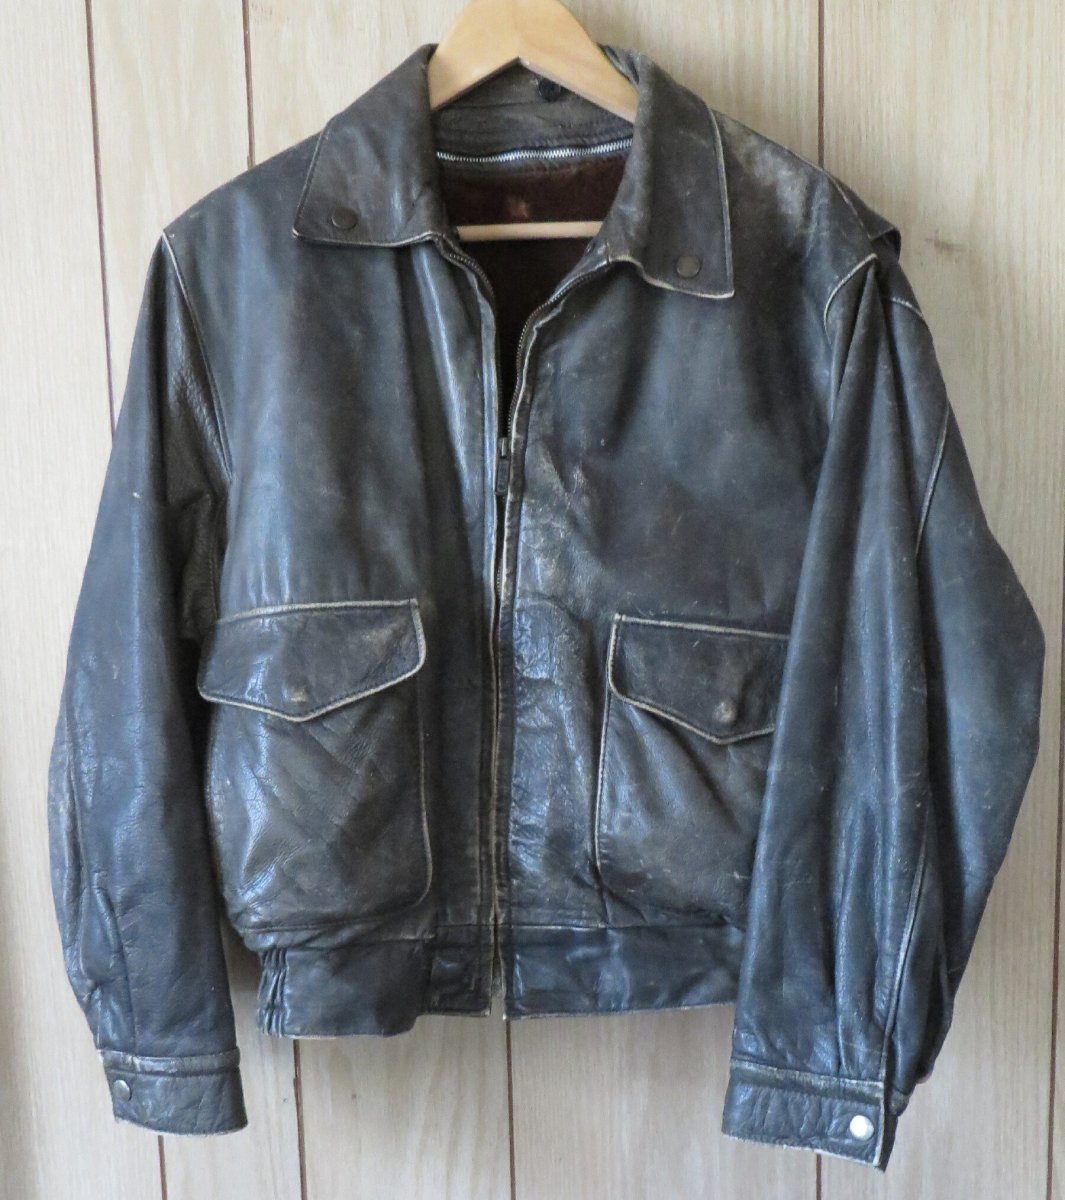 Fundraiser for Theresa Berthelsdorf 's Leather Flight Jacket!